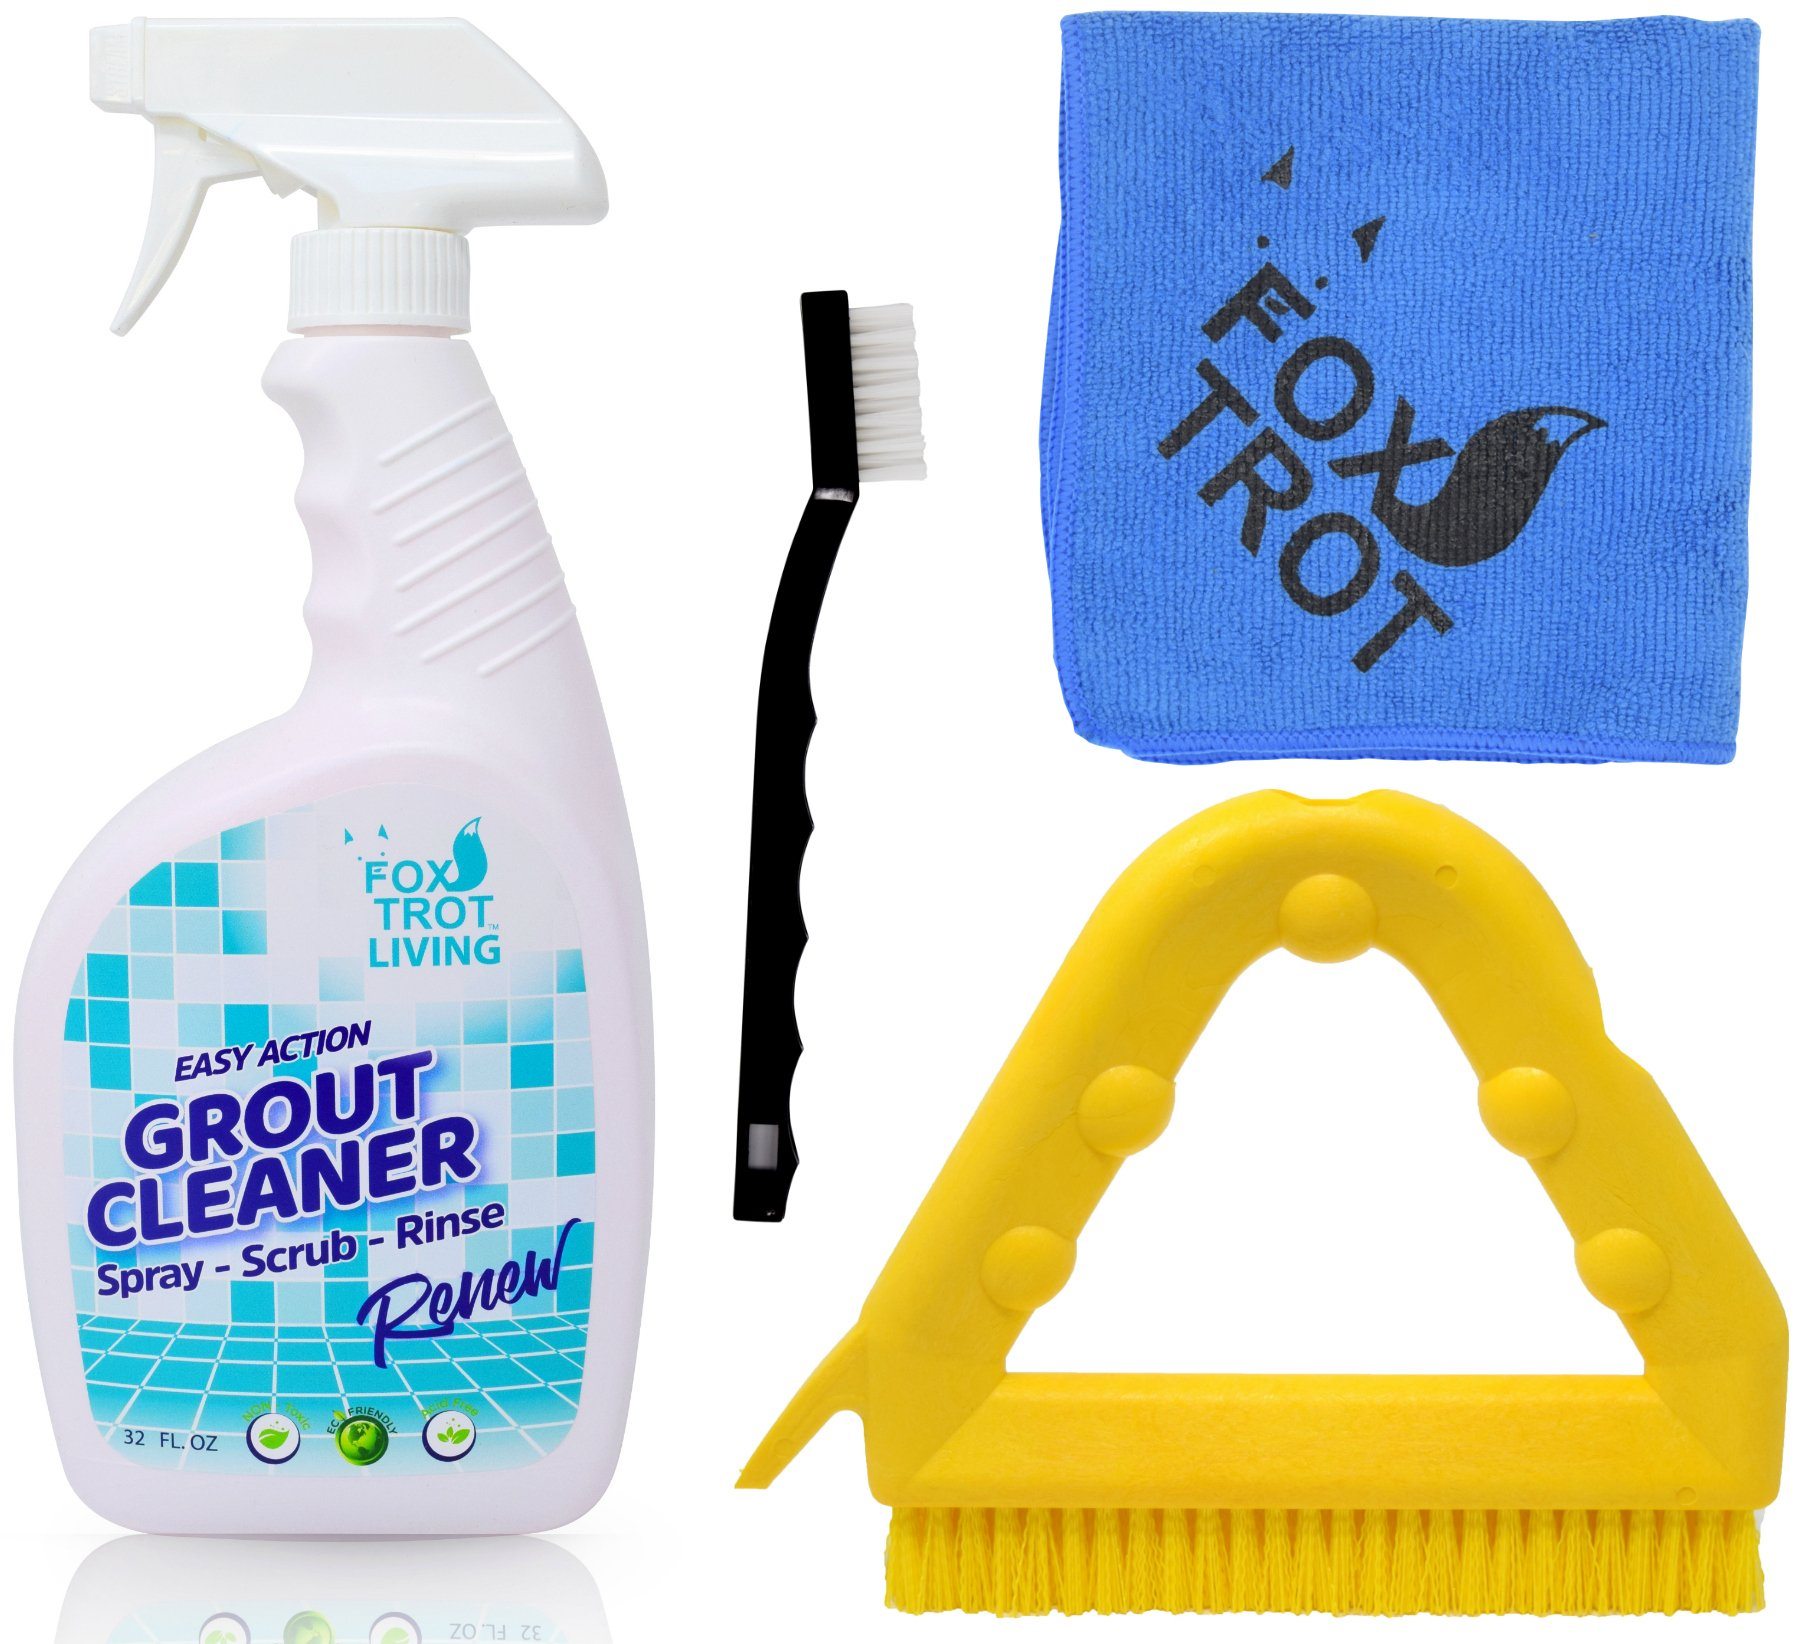 EASY ACTION GROUT AND TILE CLEANING KIT: 32 OZ Bottle EASY ACTION Grout Cleaner Spray Bottle   Versatile Triangle Grout Brush With Scraper   Mini Nylon Brush   Foxtrot TM Professional Grade Microfiber